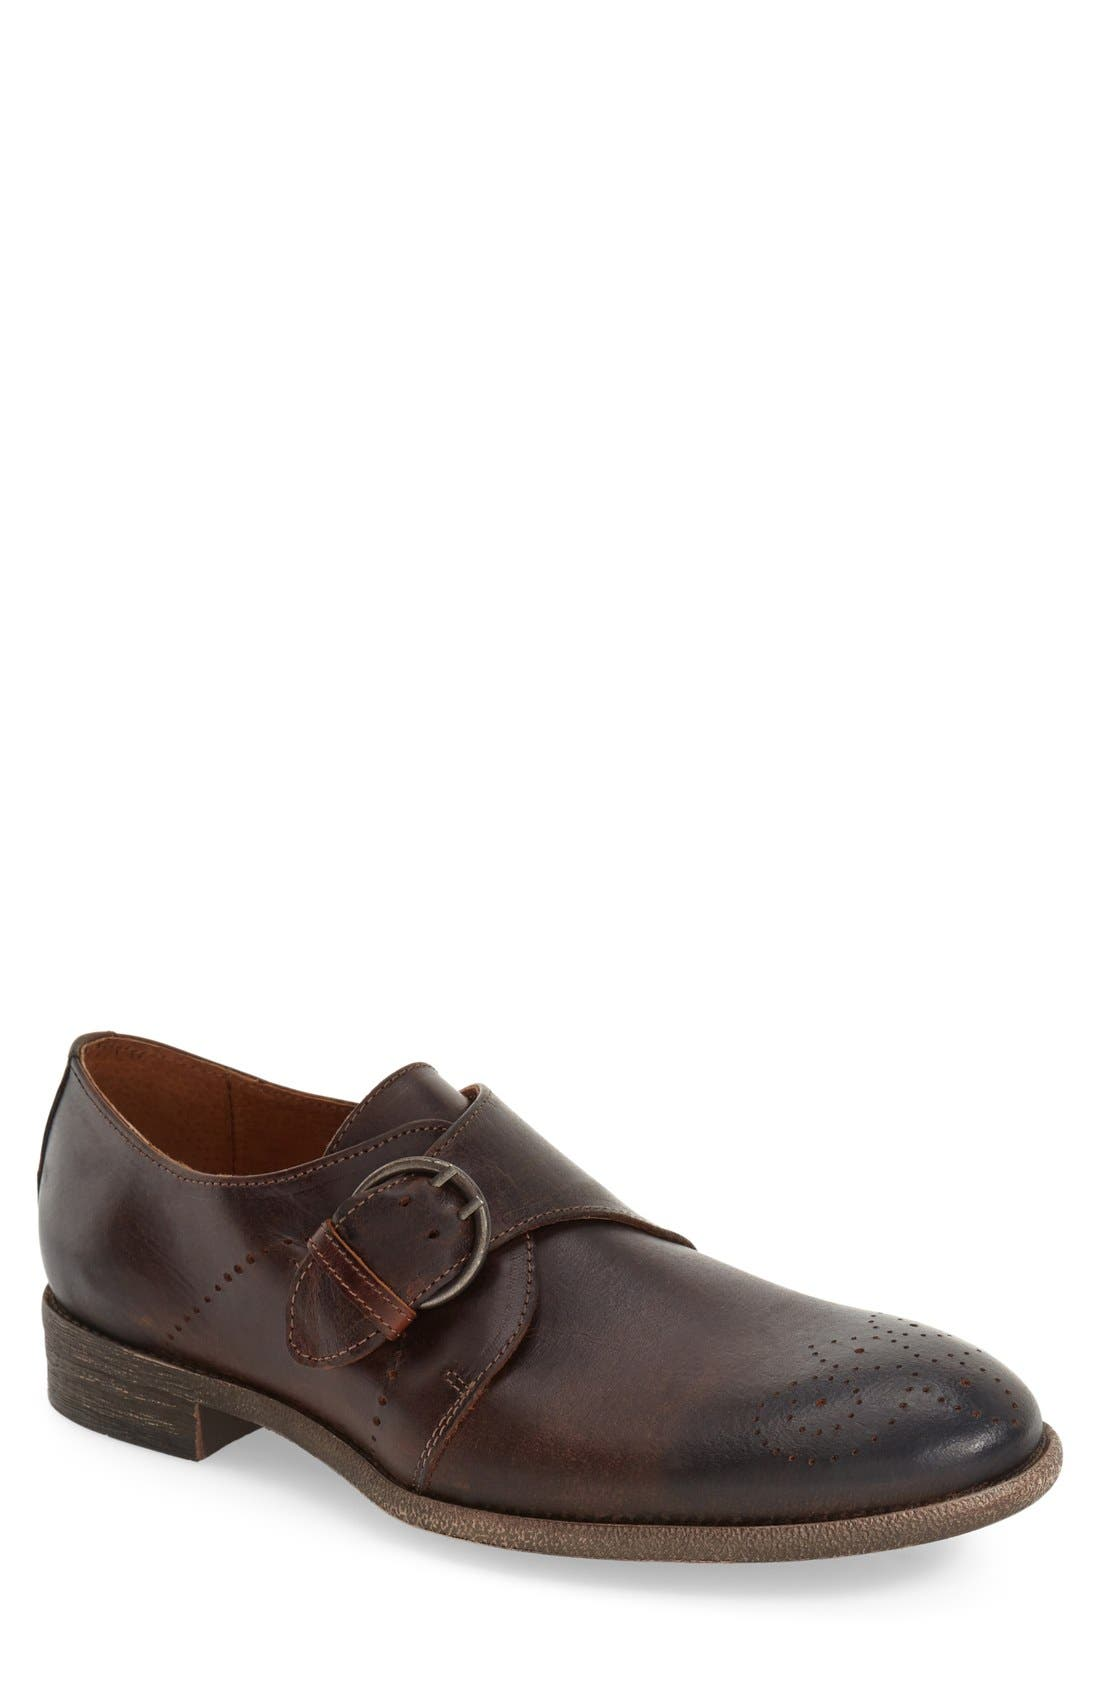 'Montana' Monk Strap Shoe, Main, color, 201